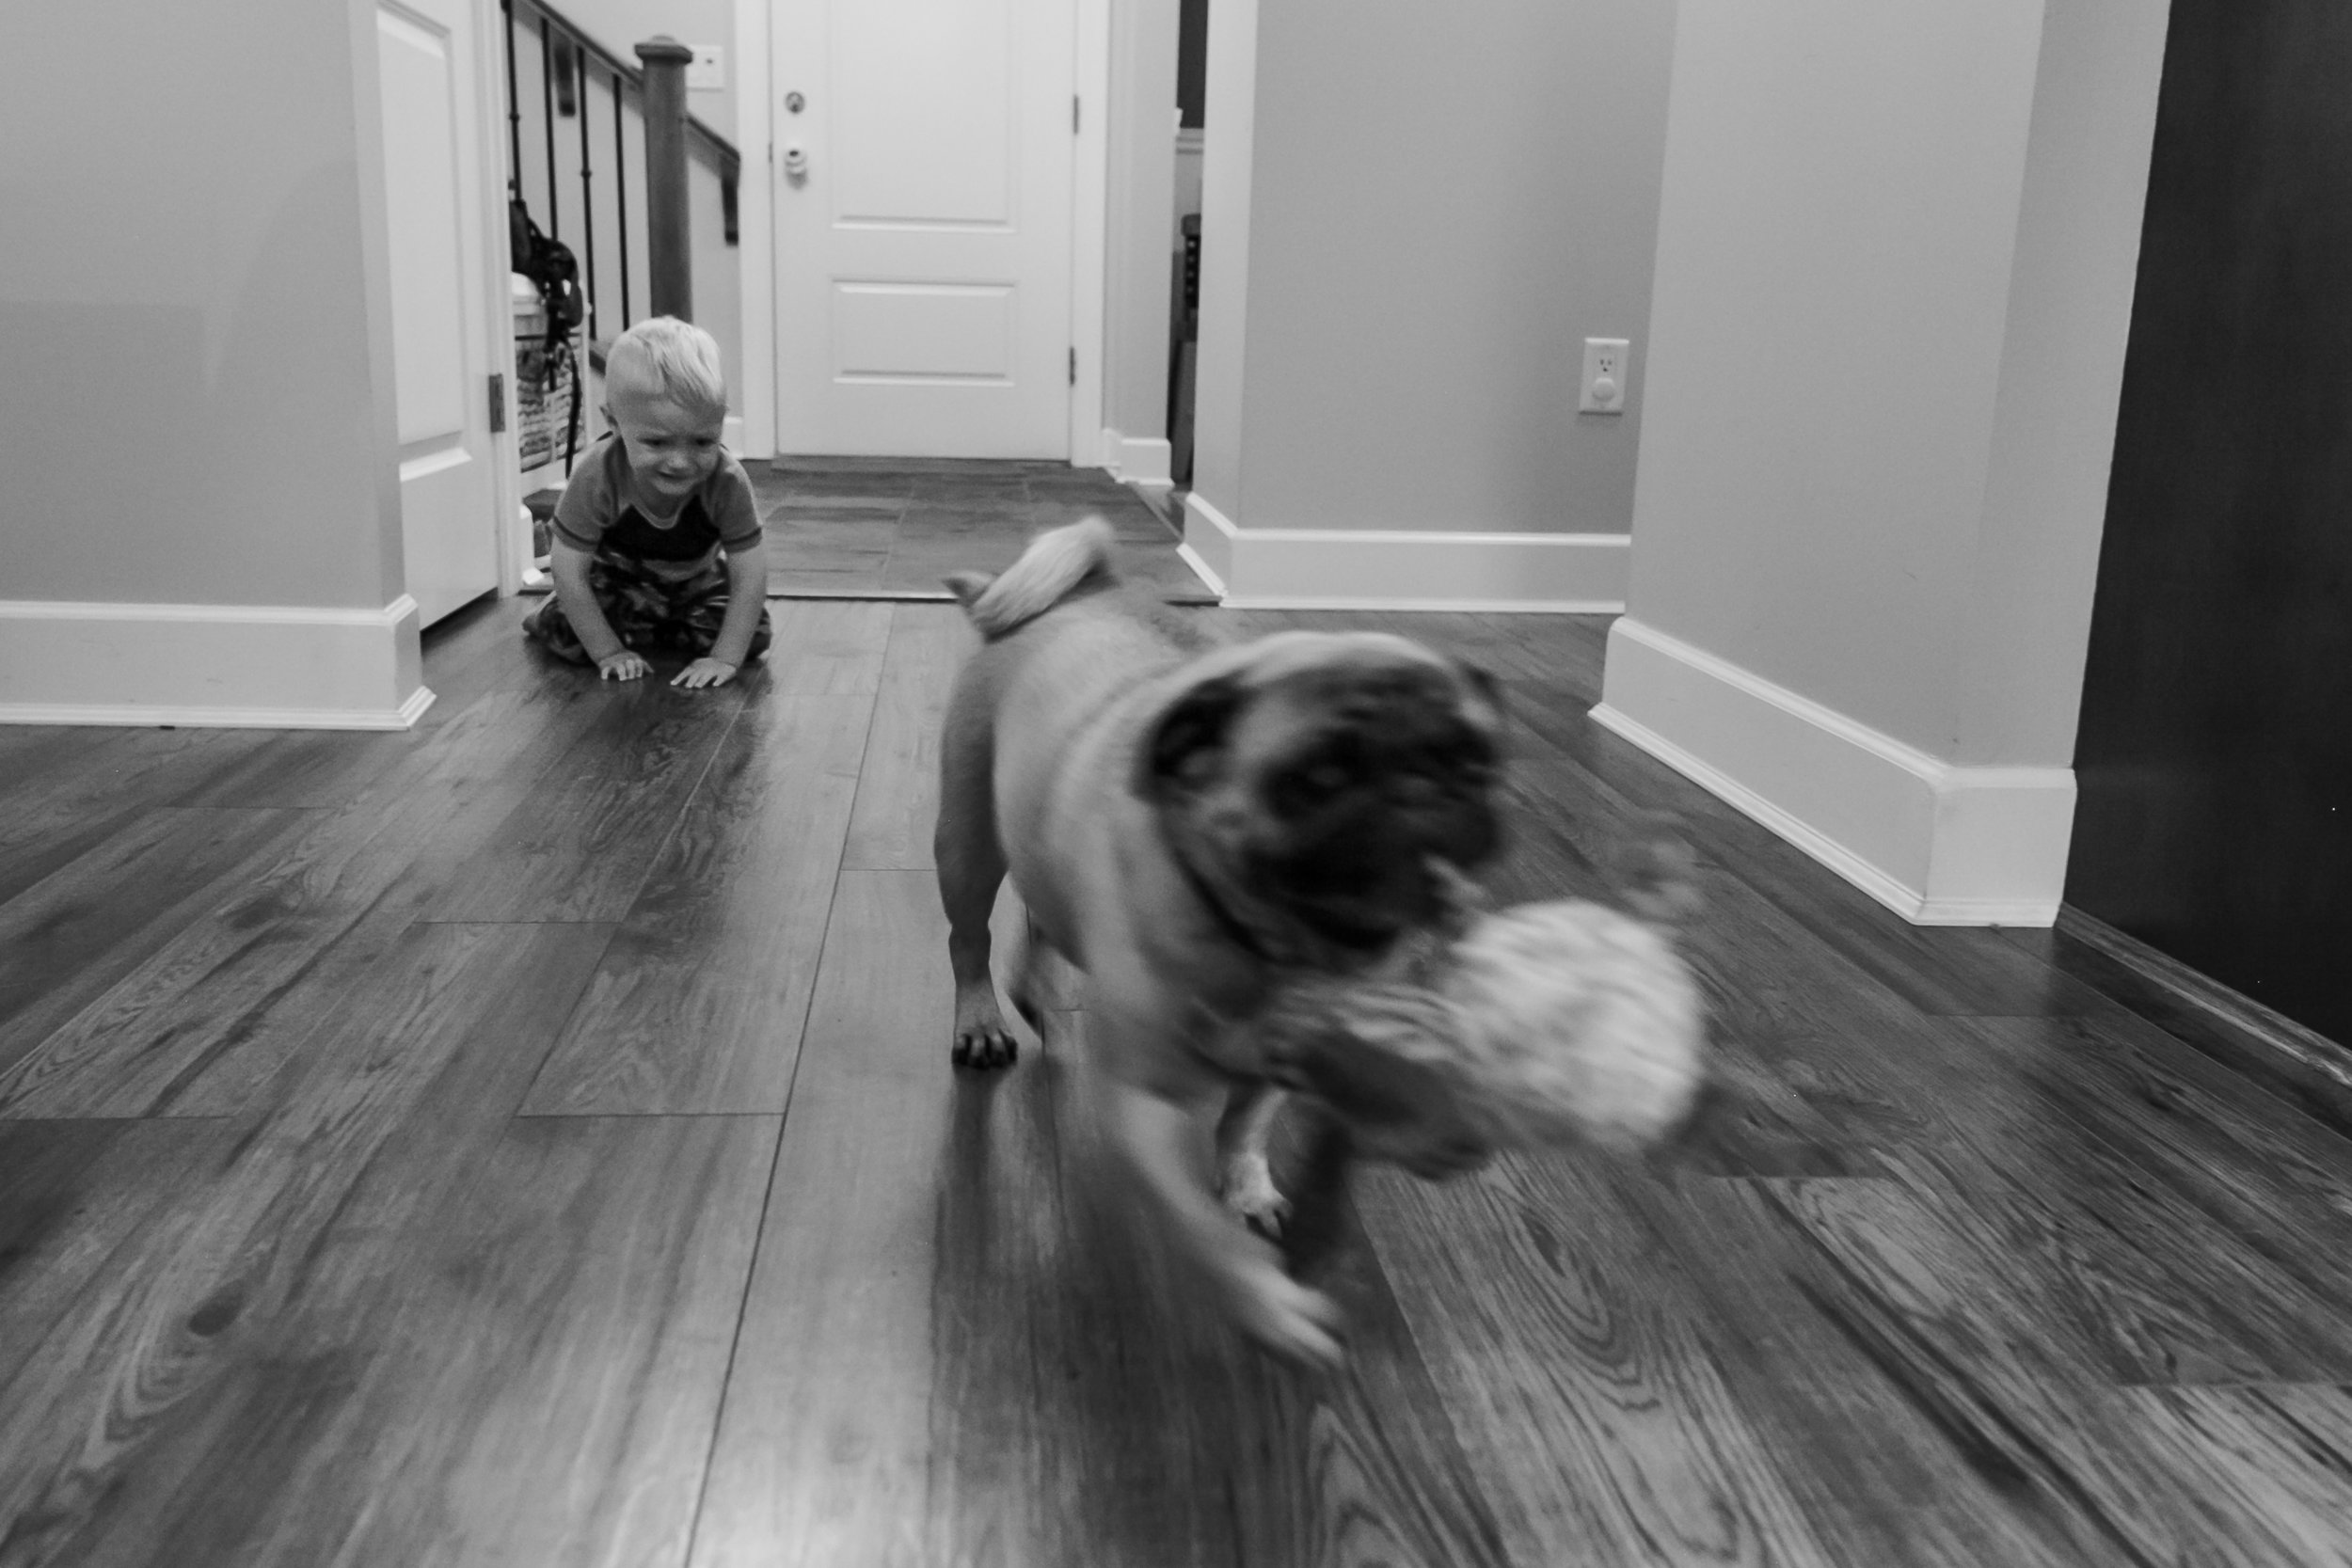 Surrey Family photographer. Vancouver family photographer, klutch Photography, documentary photography, candid photography, dog steals child's toy